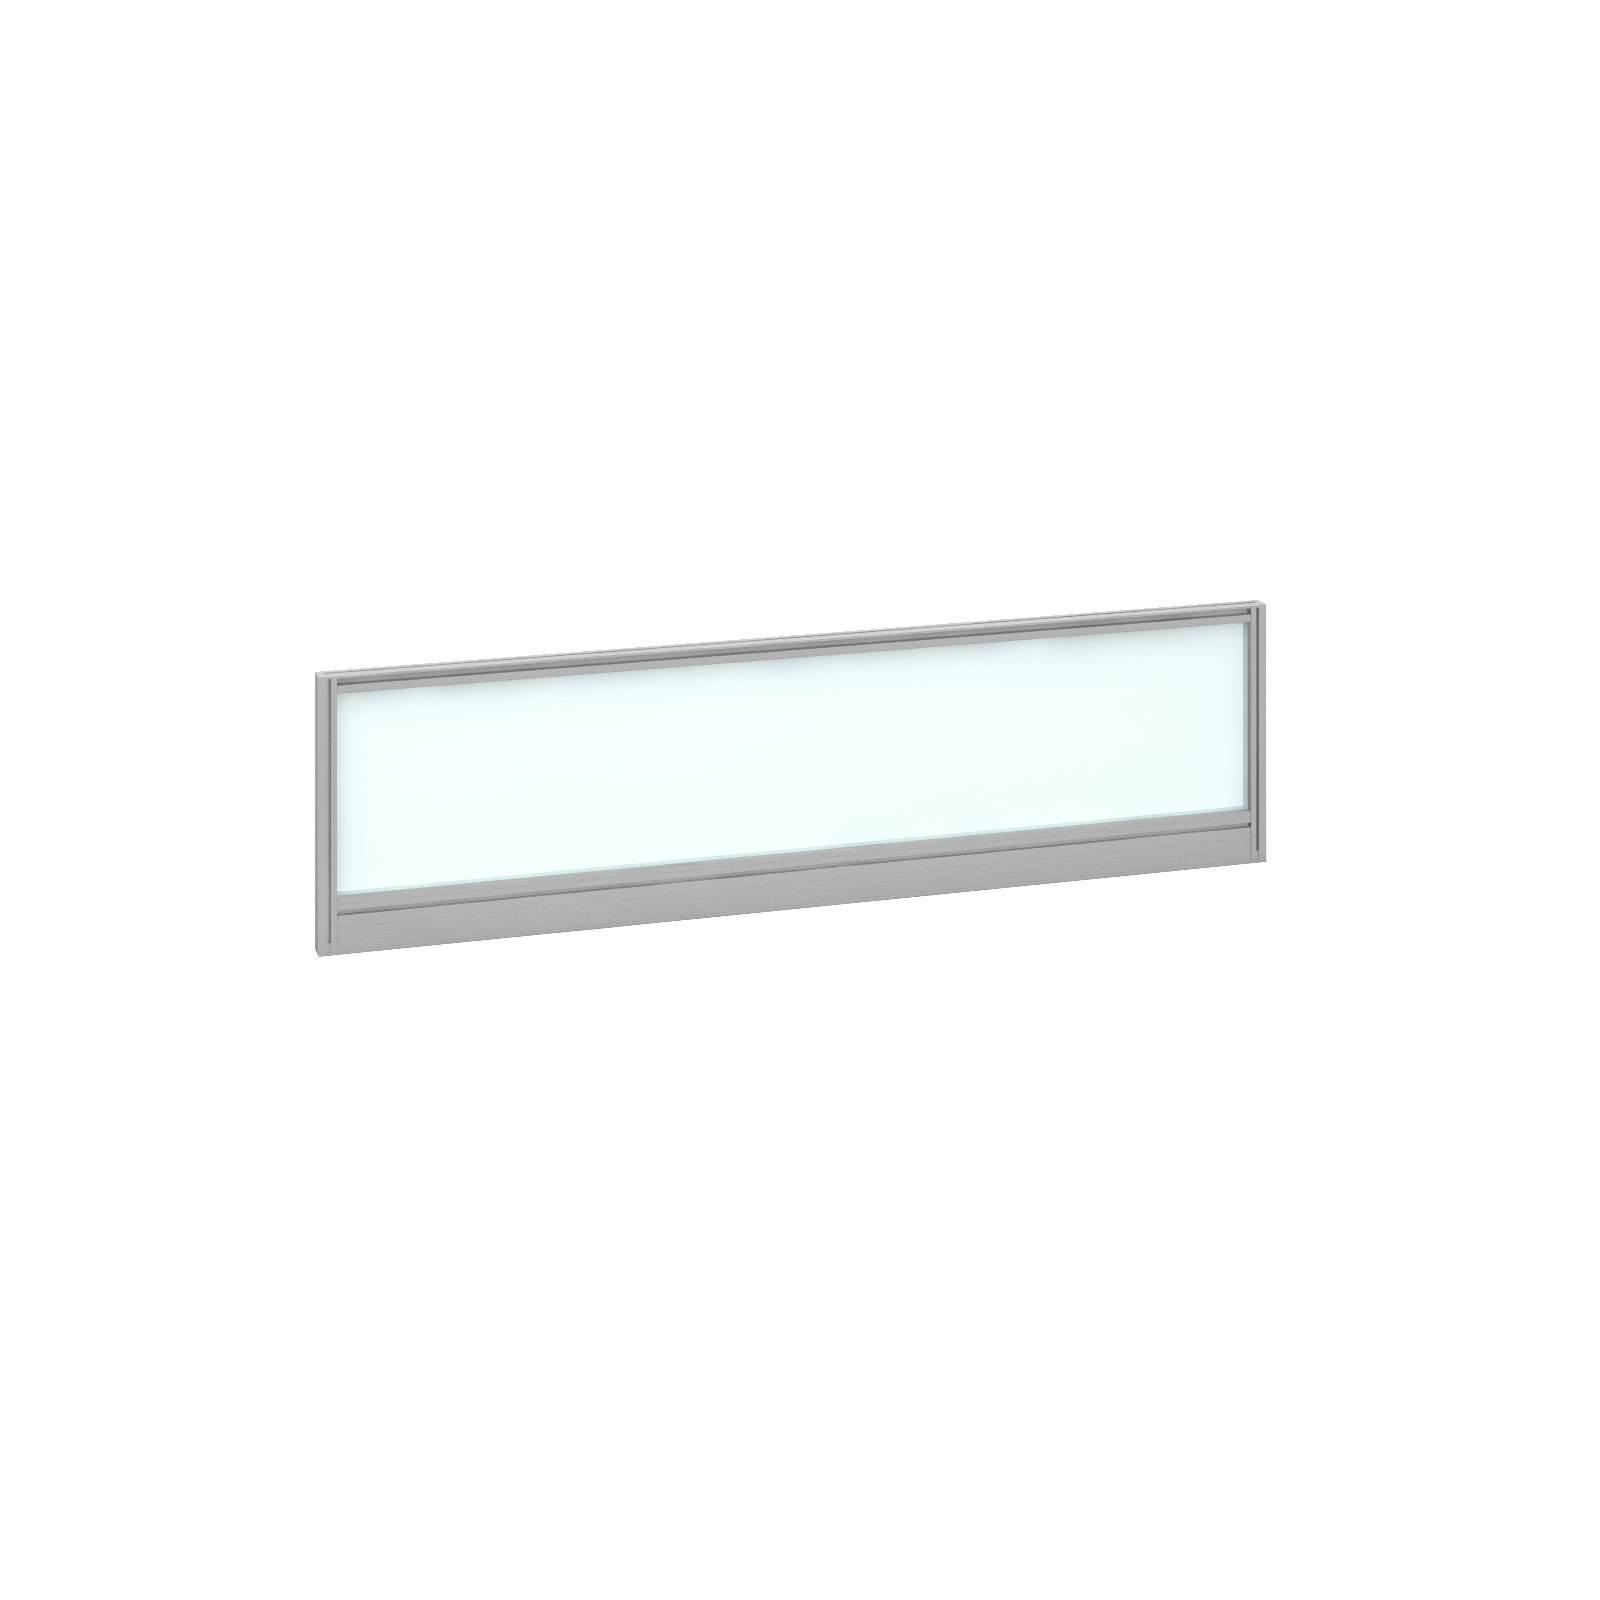 1400mm Deluxe Fully Glazed Rear Screen -  Silver Frame - White Glazing